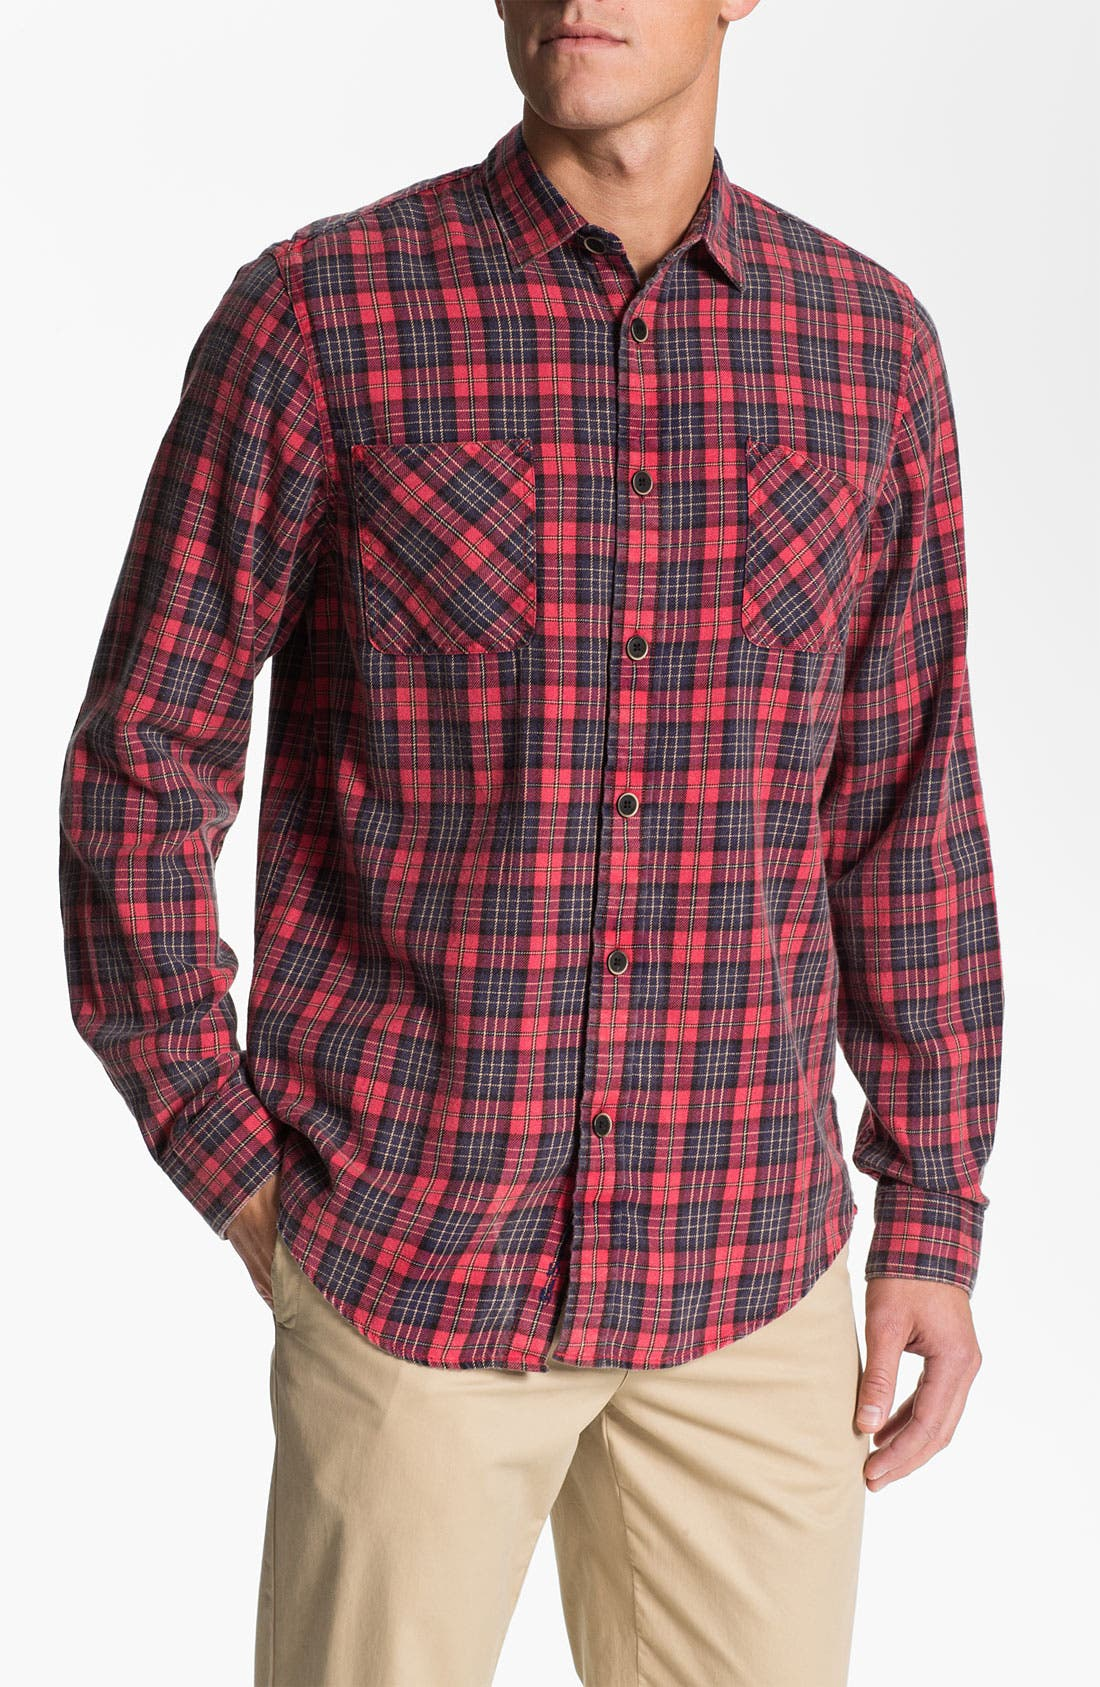 Alternate Image 1 Selected - Ben Sherman 'Shoreditch' Plaid Twill Shirt